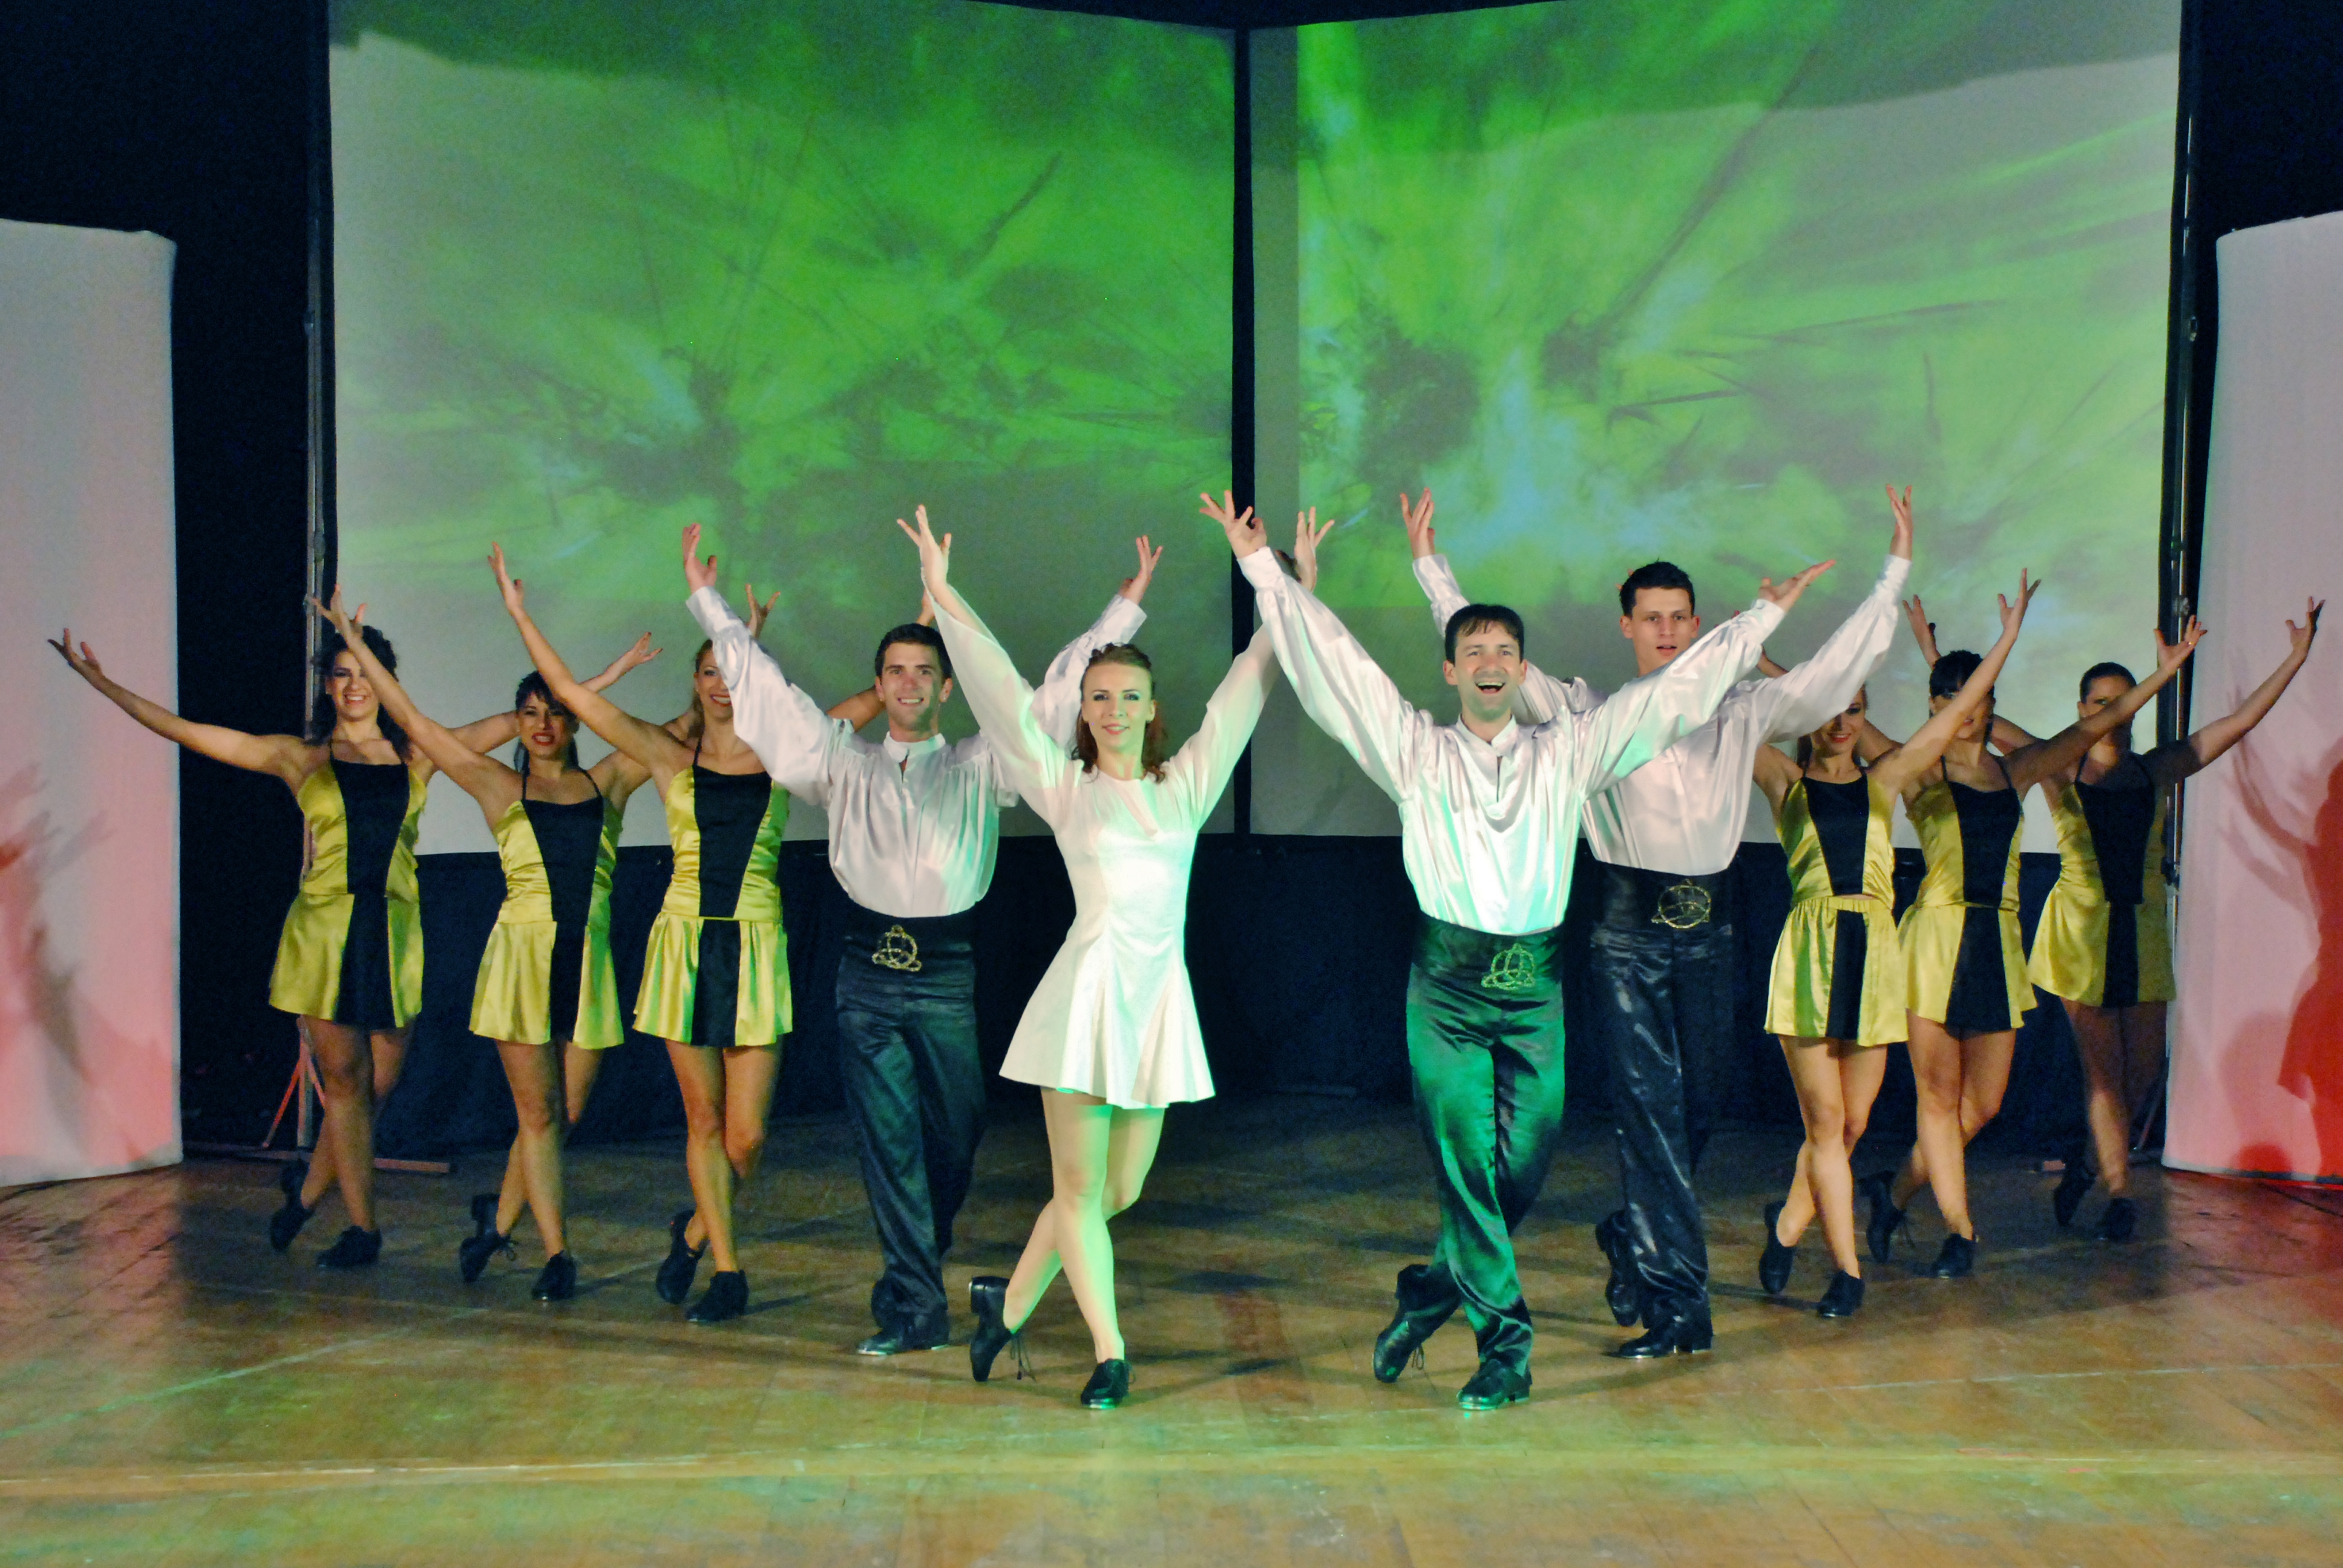 STEP SHOWS - Tap Dancing - Trupa de Dans The Sky Iasi by Adrian Stefan